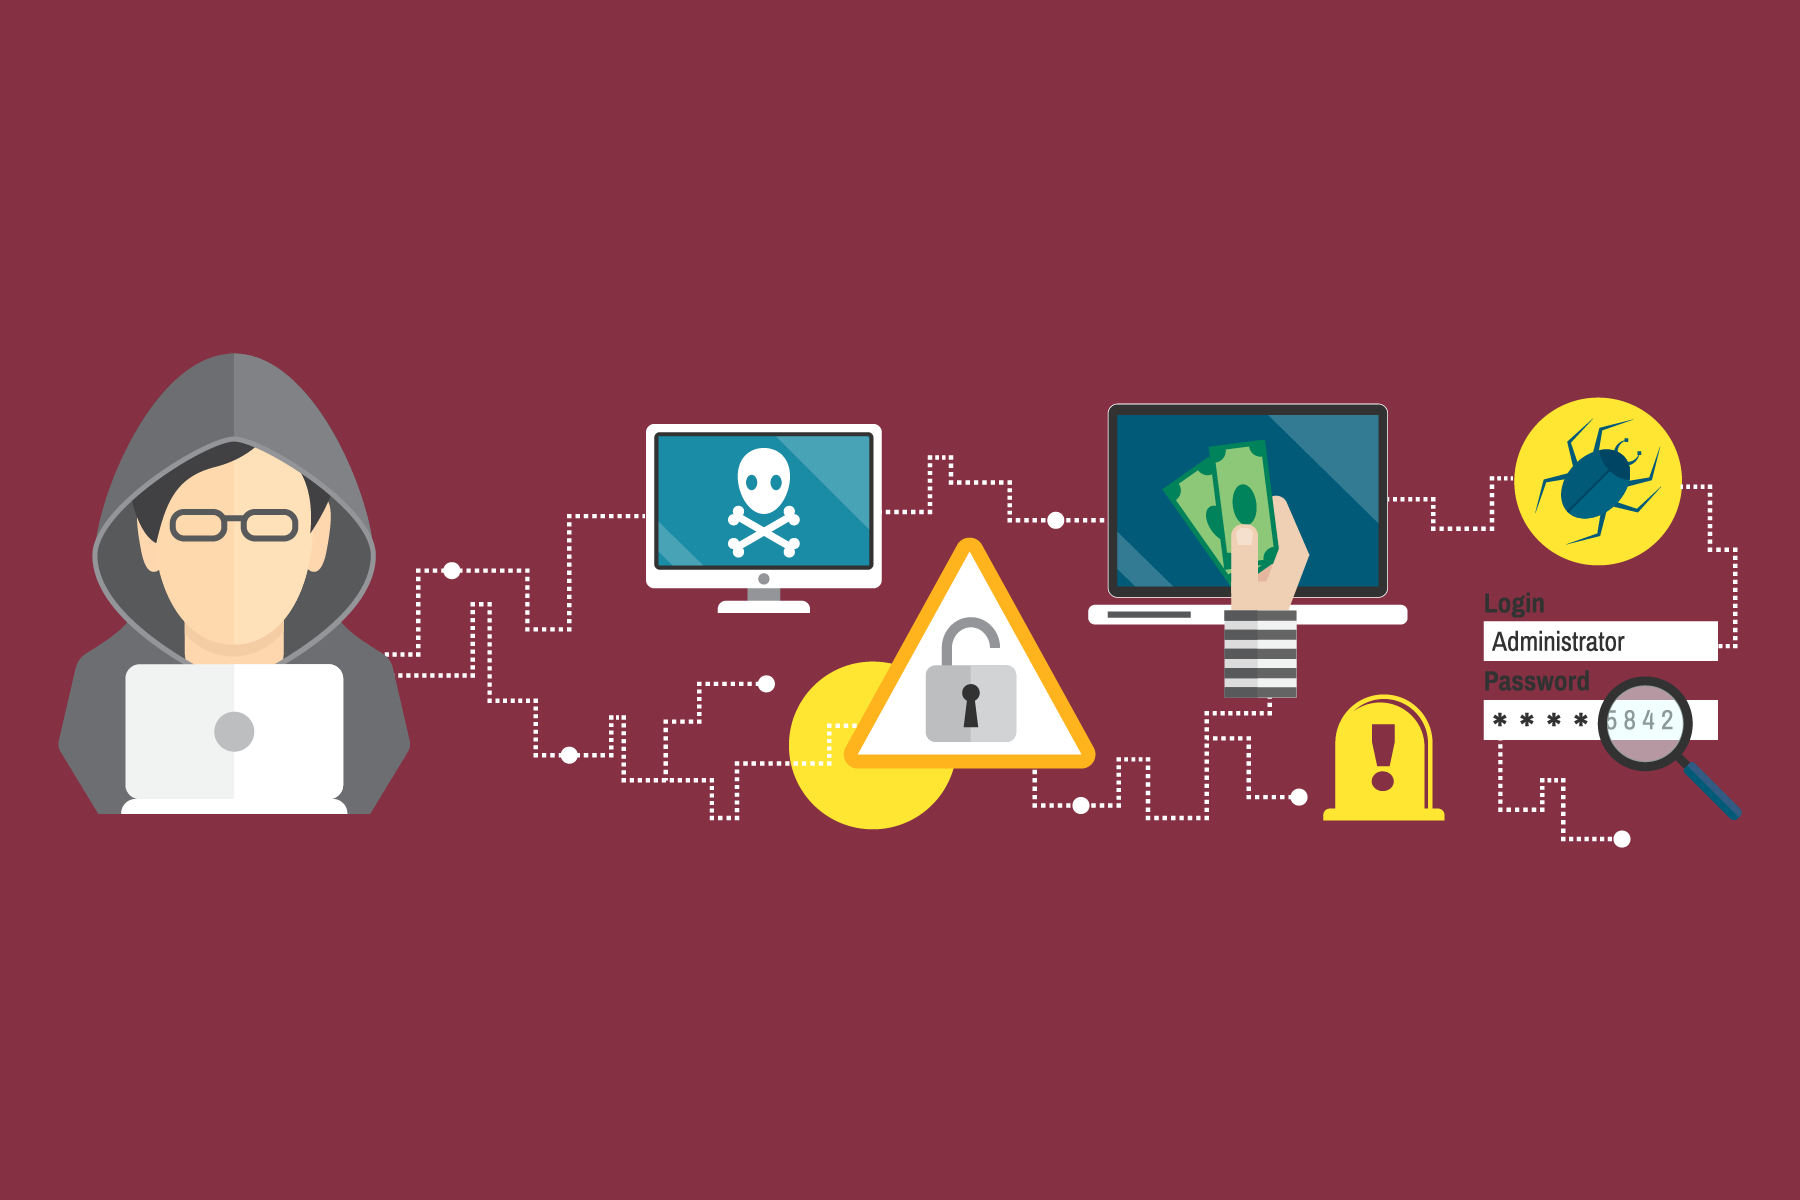 Security from hacking and other vulnerabilities